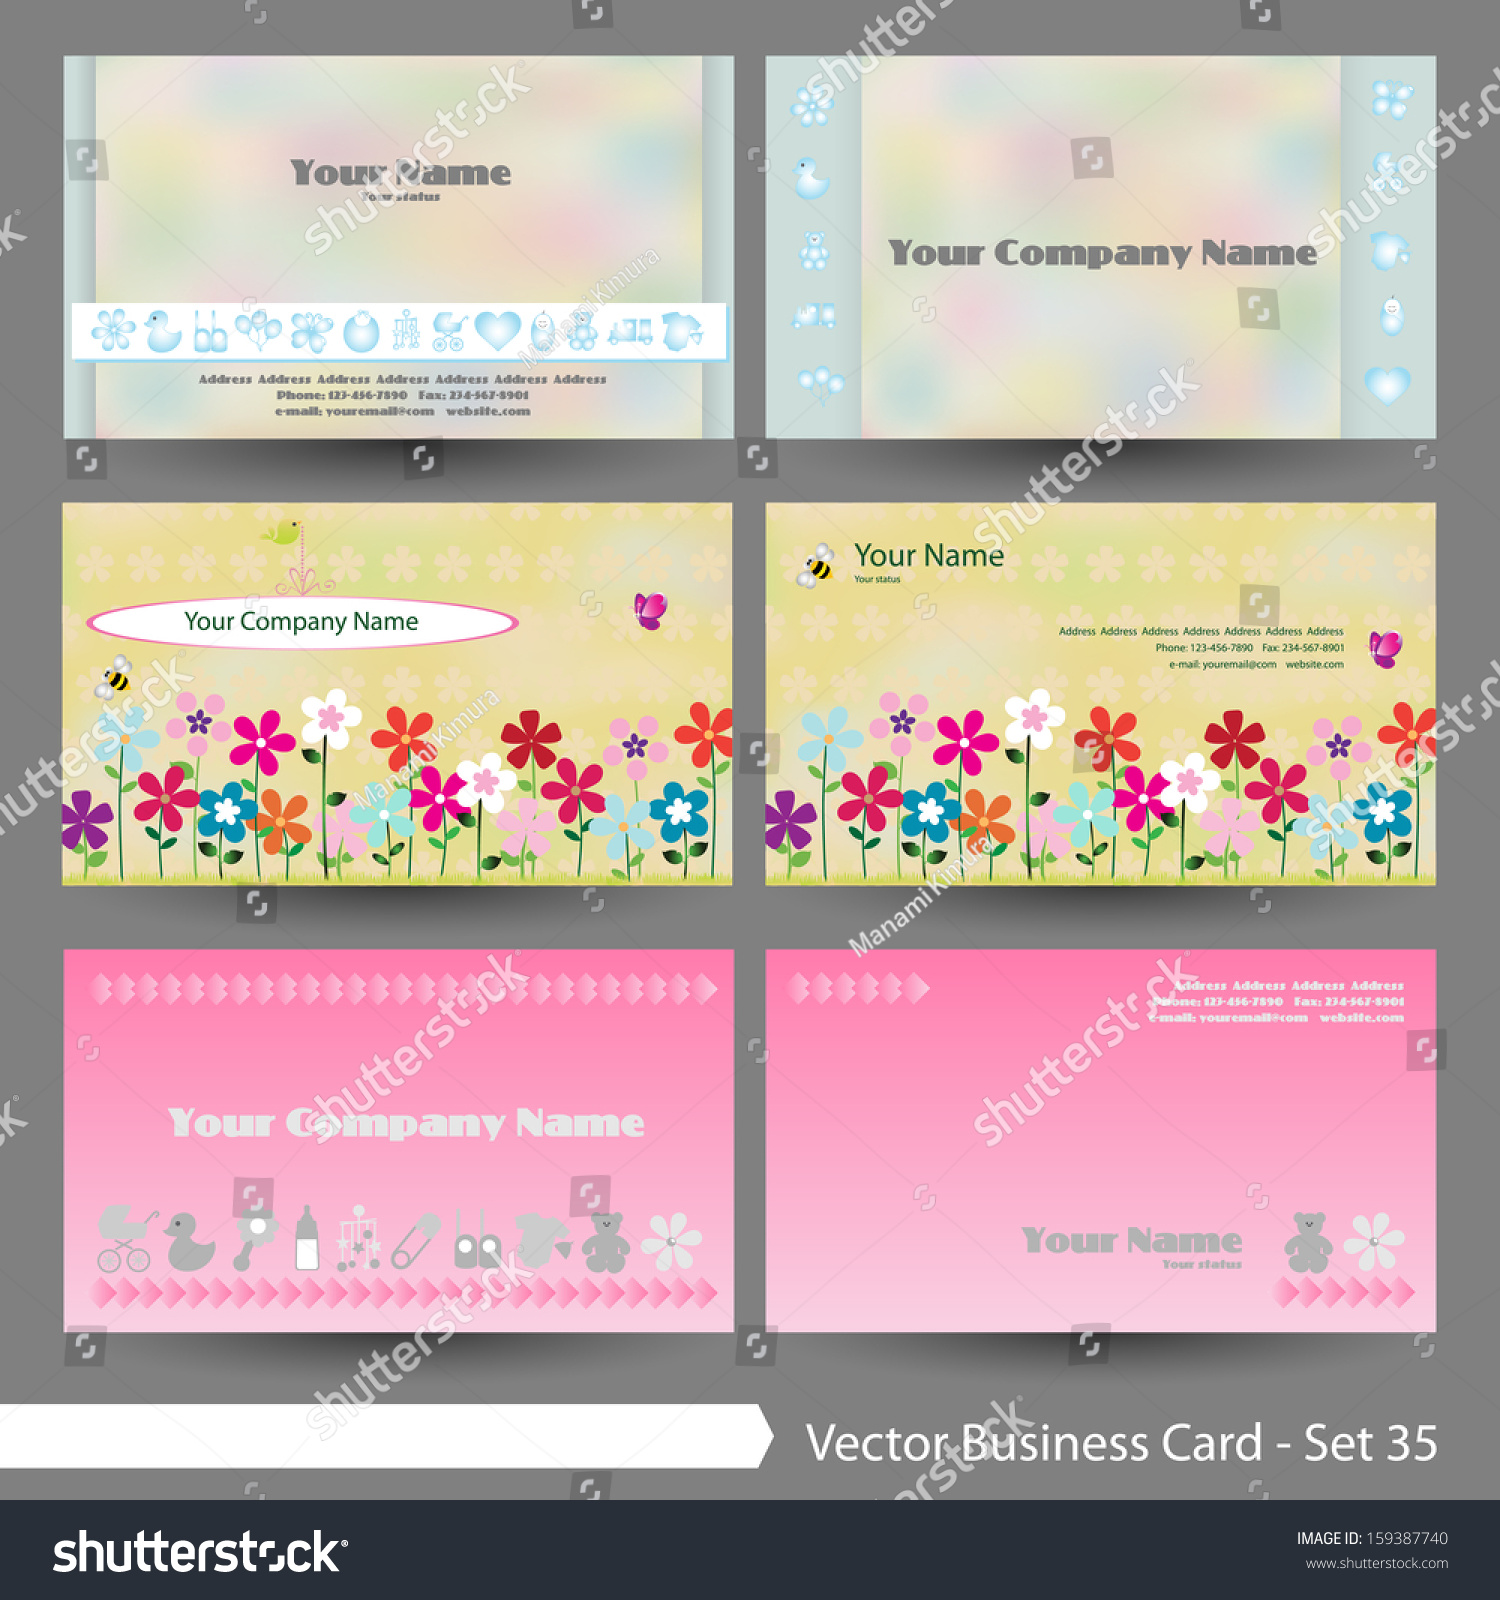 Vector Illustration Business Card Template Set Stock Vector ...